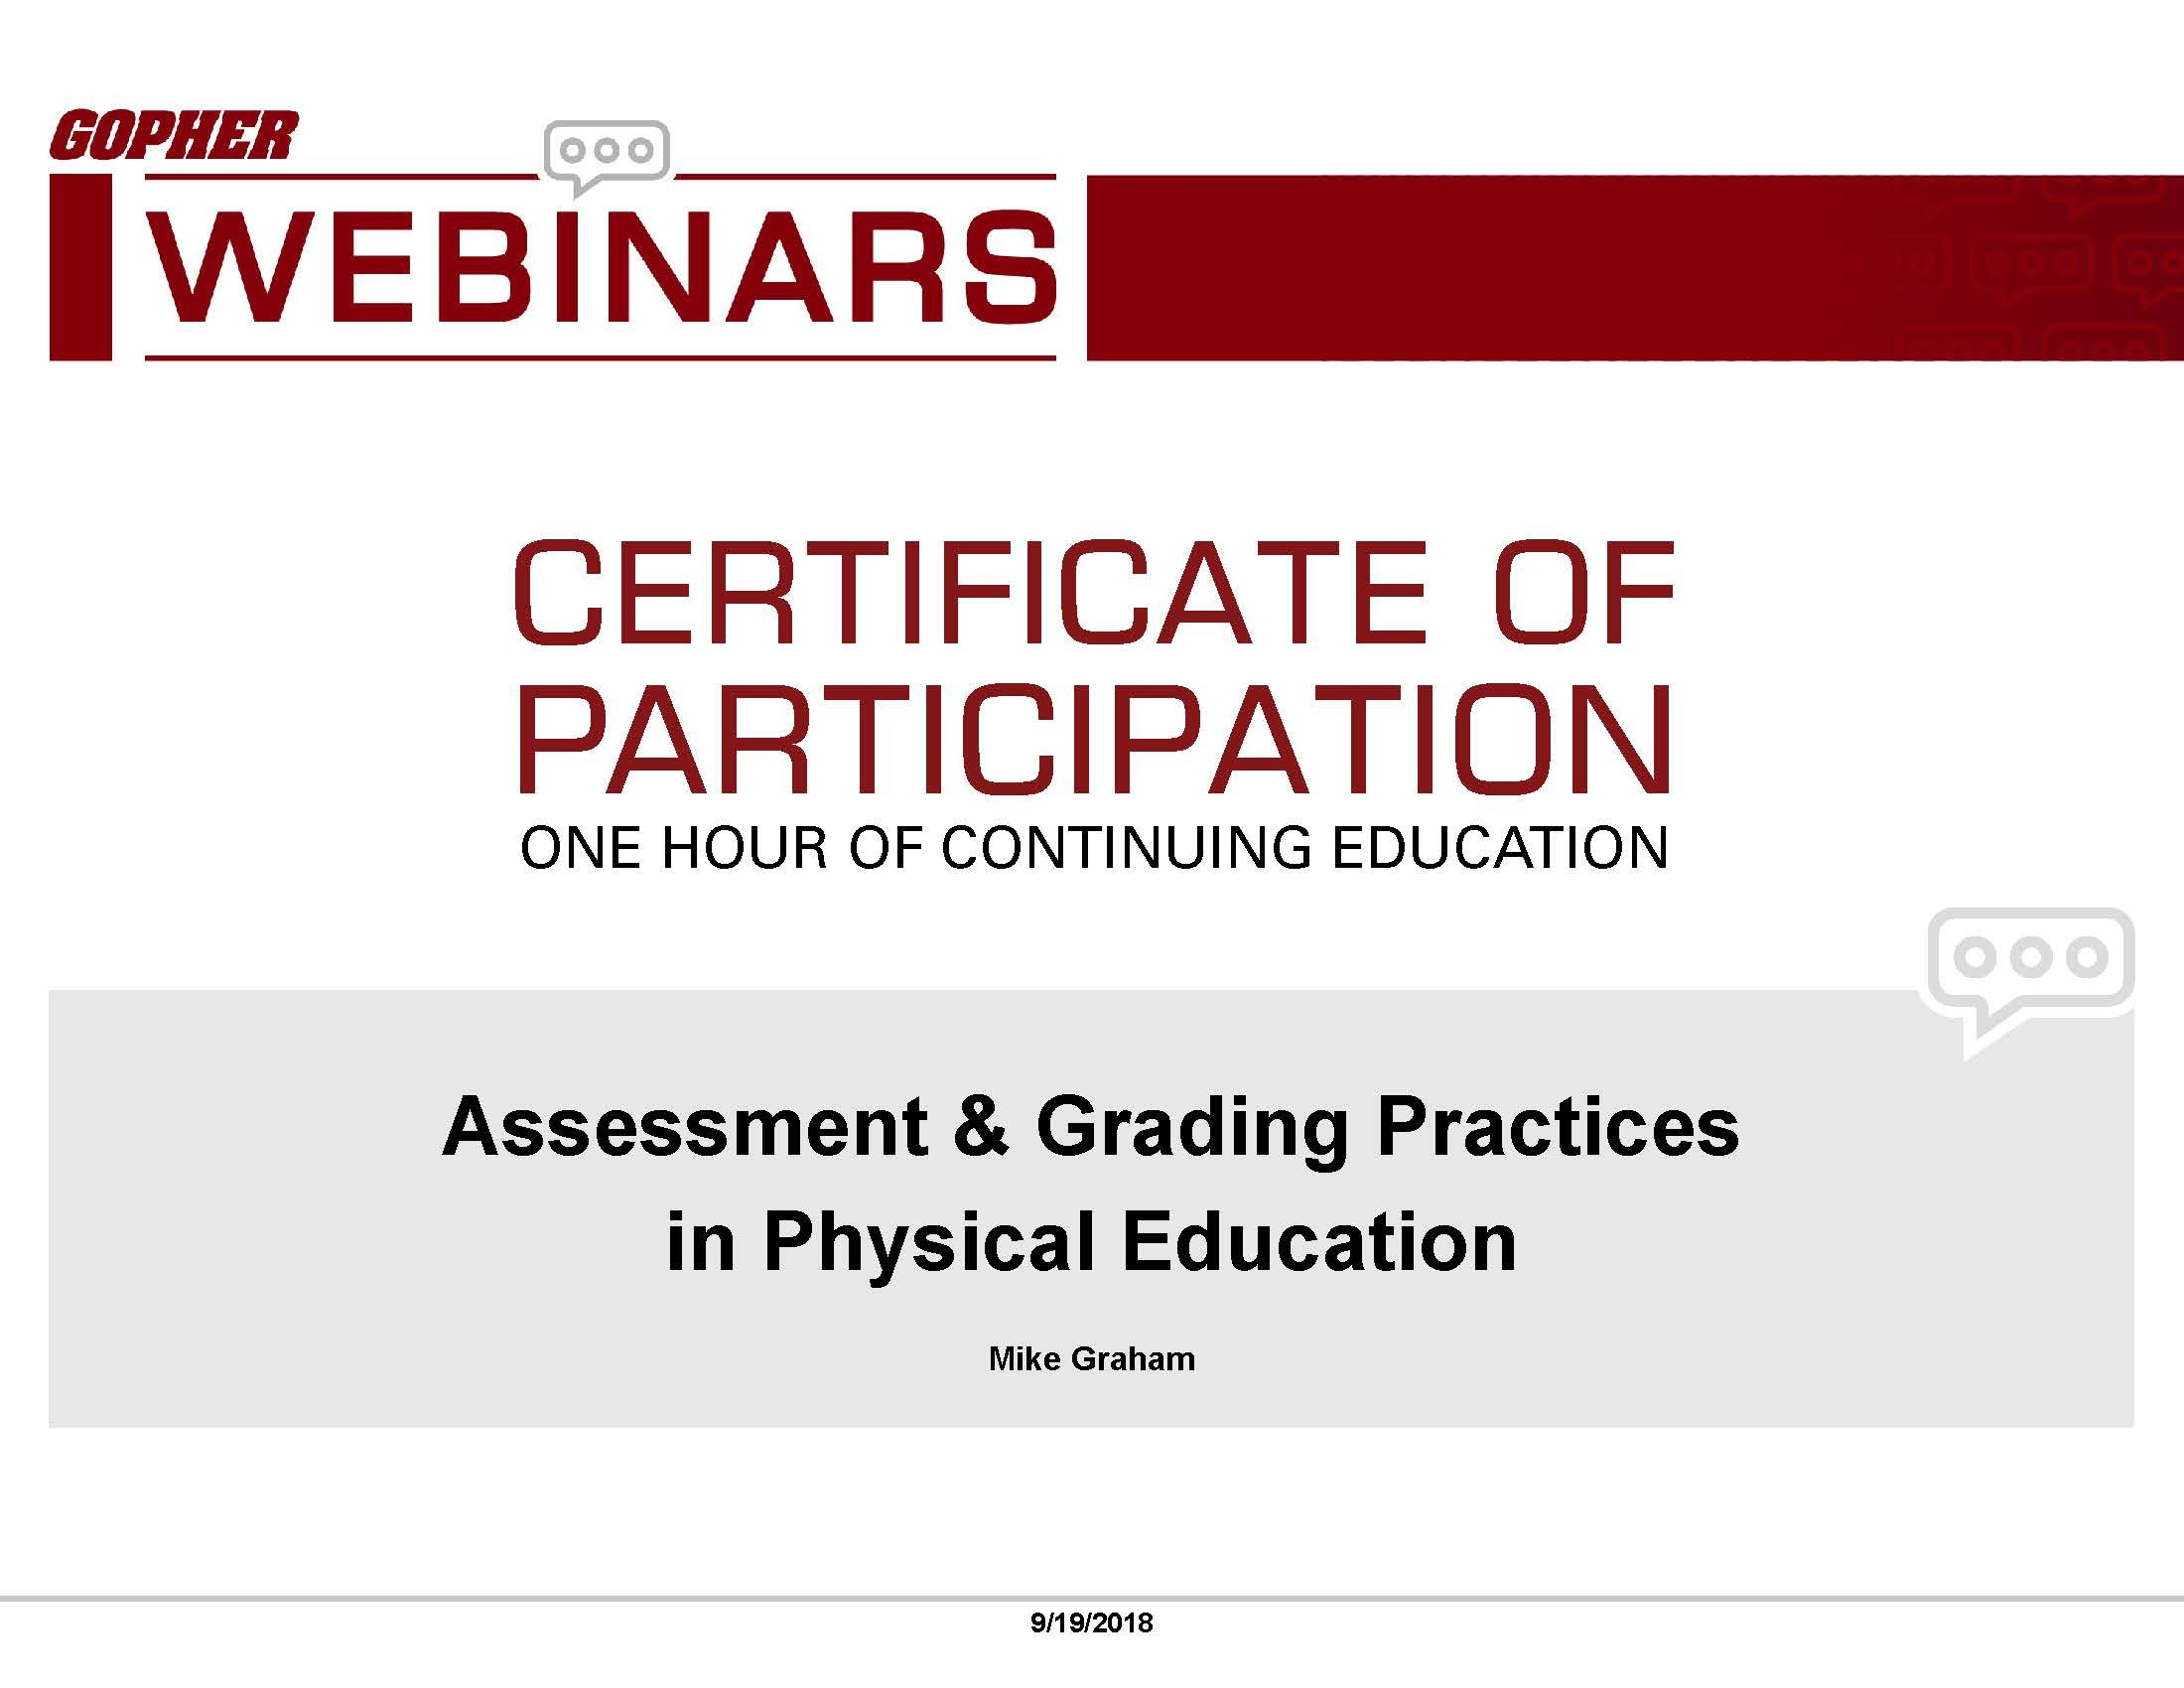 Print a certificate of participation for this webinar